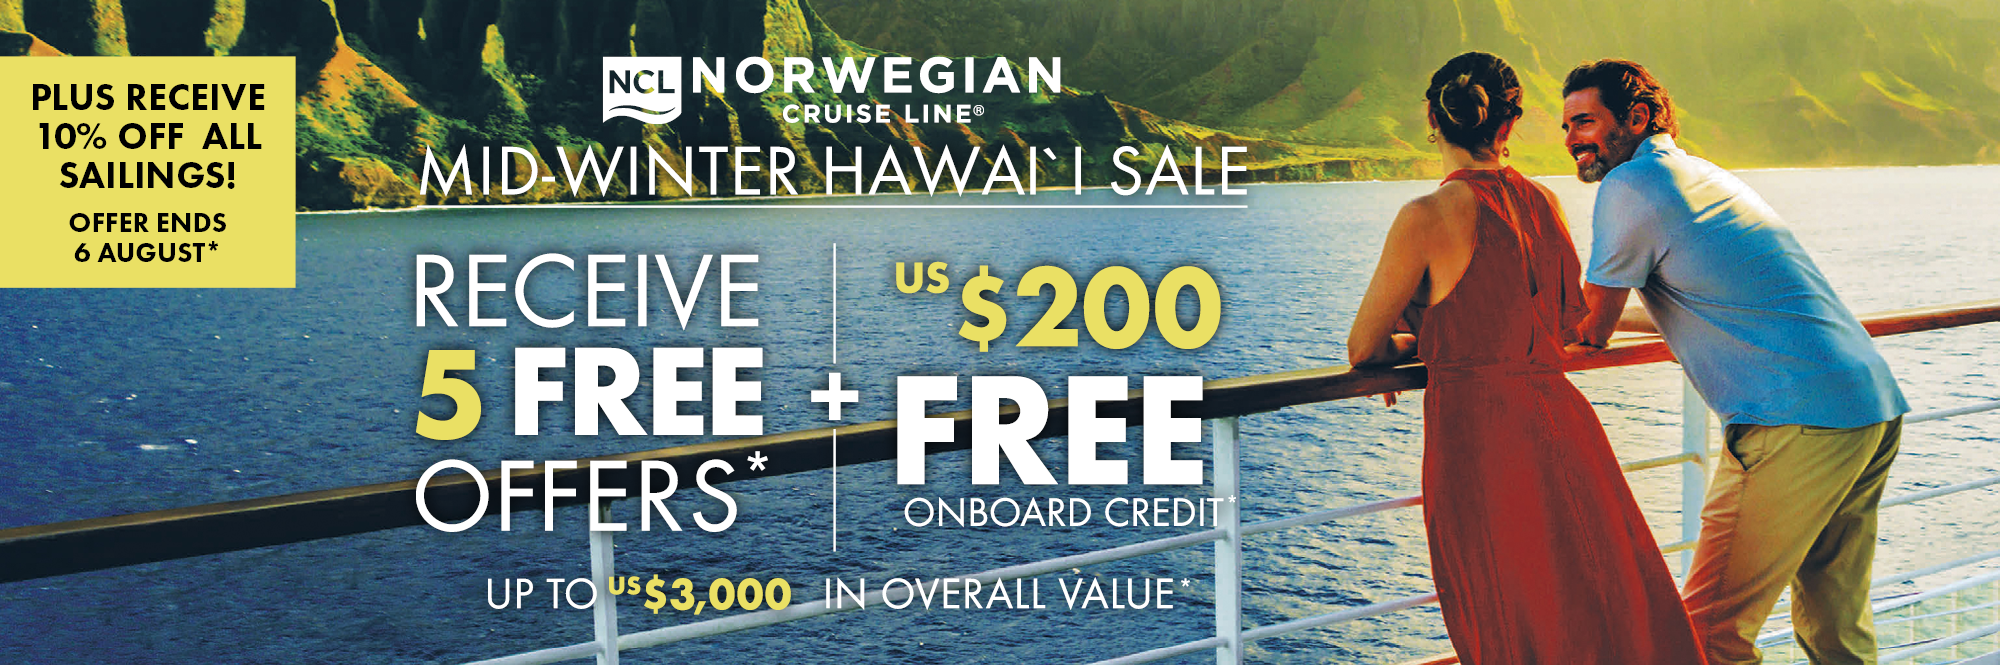 NCL's Mid Winter Hawai'i Sale – Newcastle Cruise Sale Day